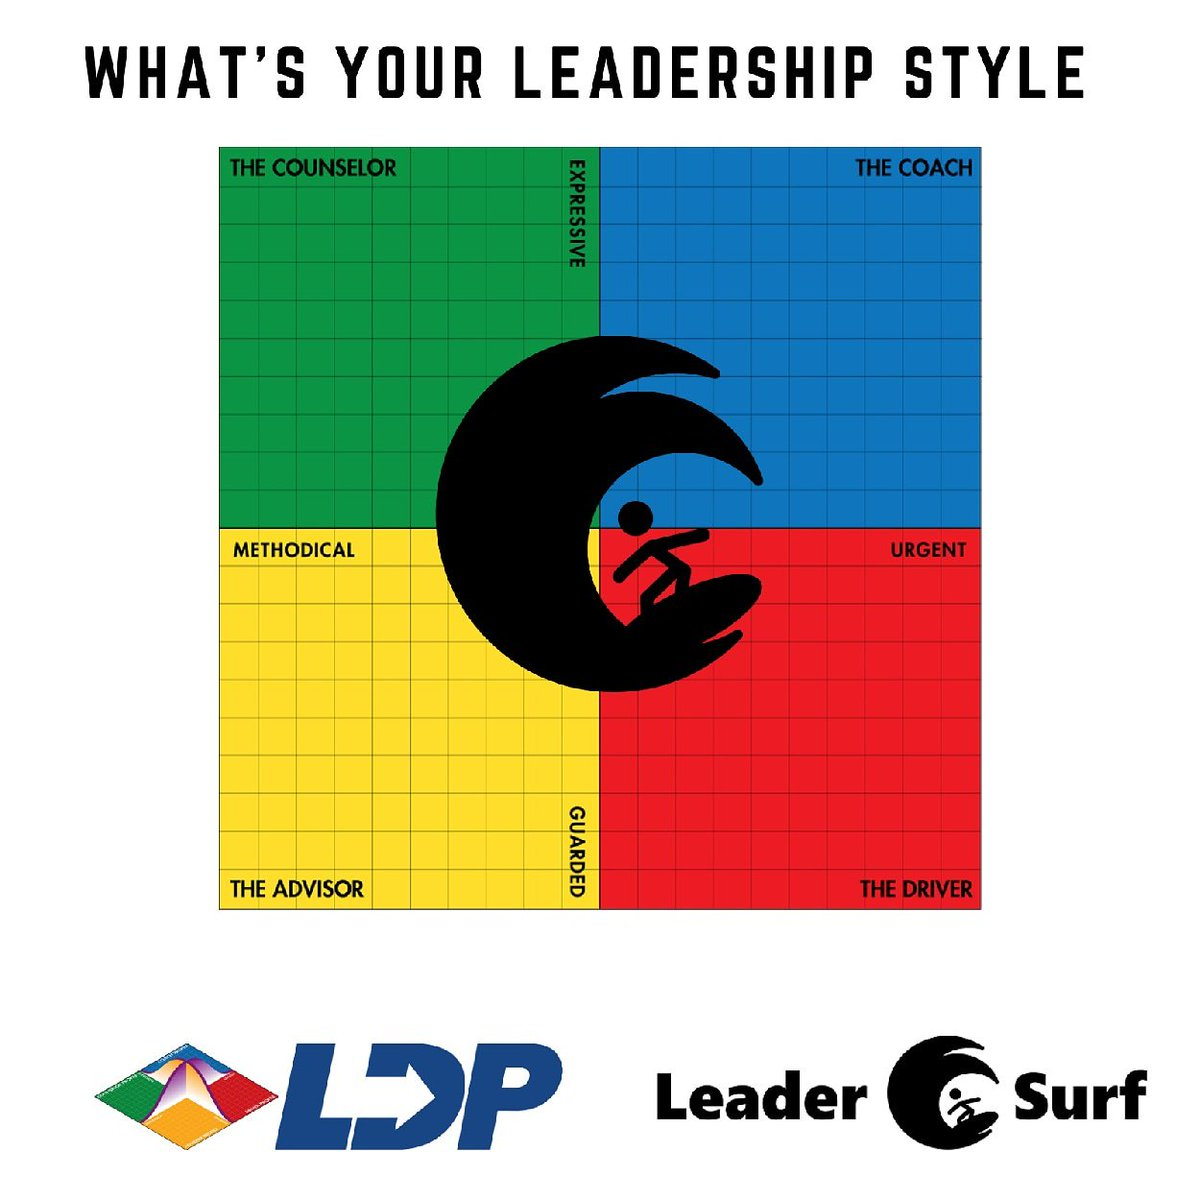 LeaderSurf on Twitter: